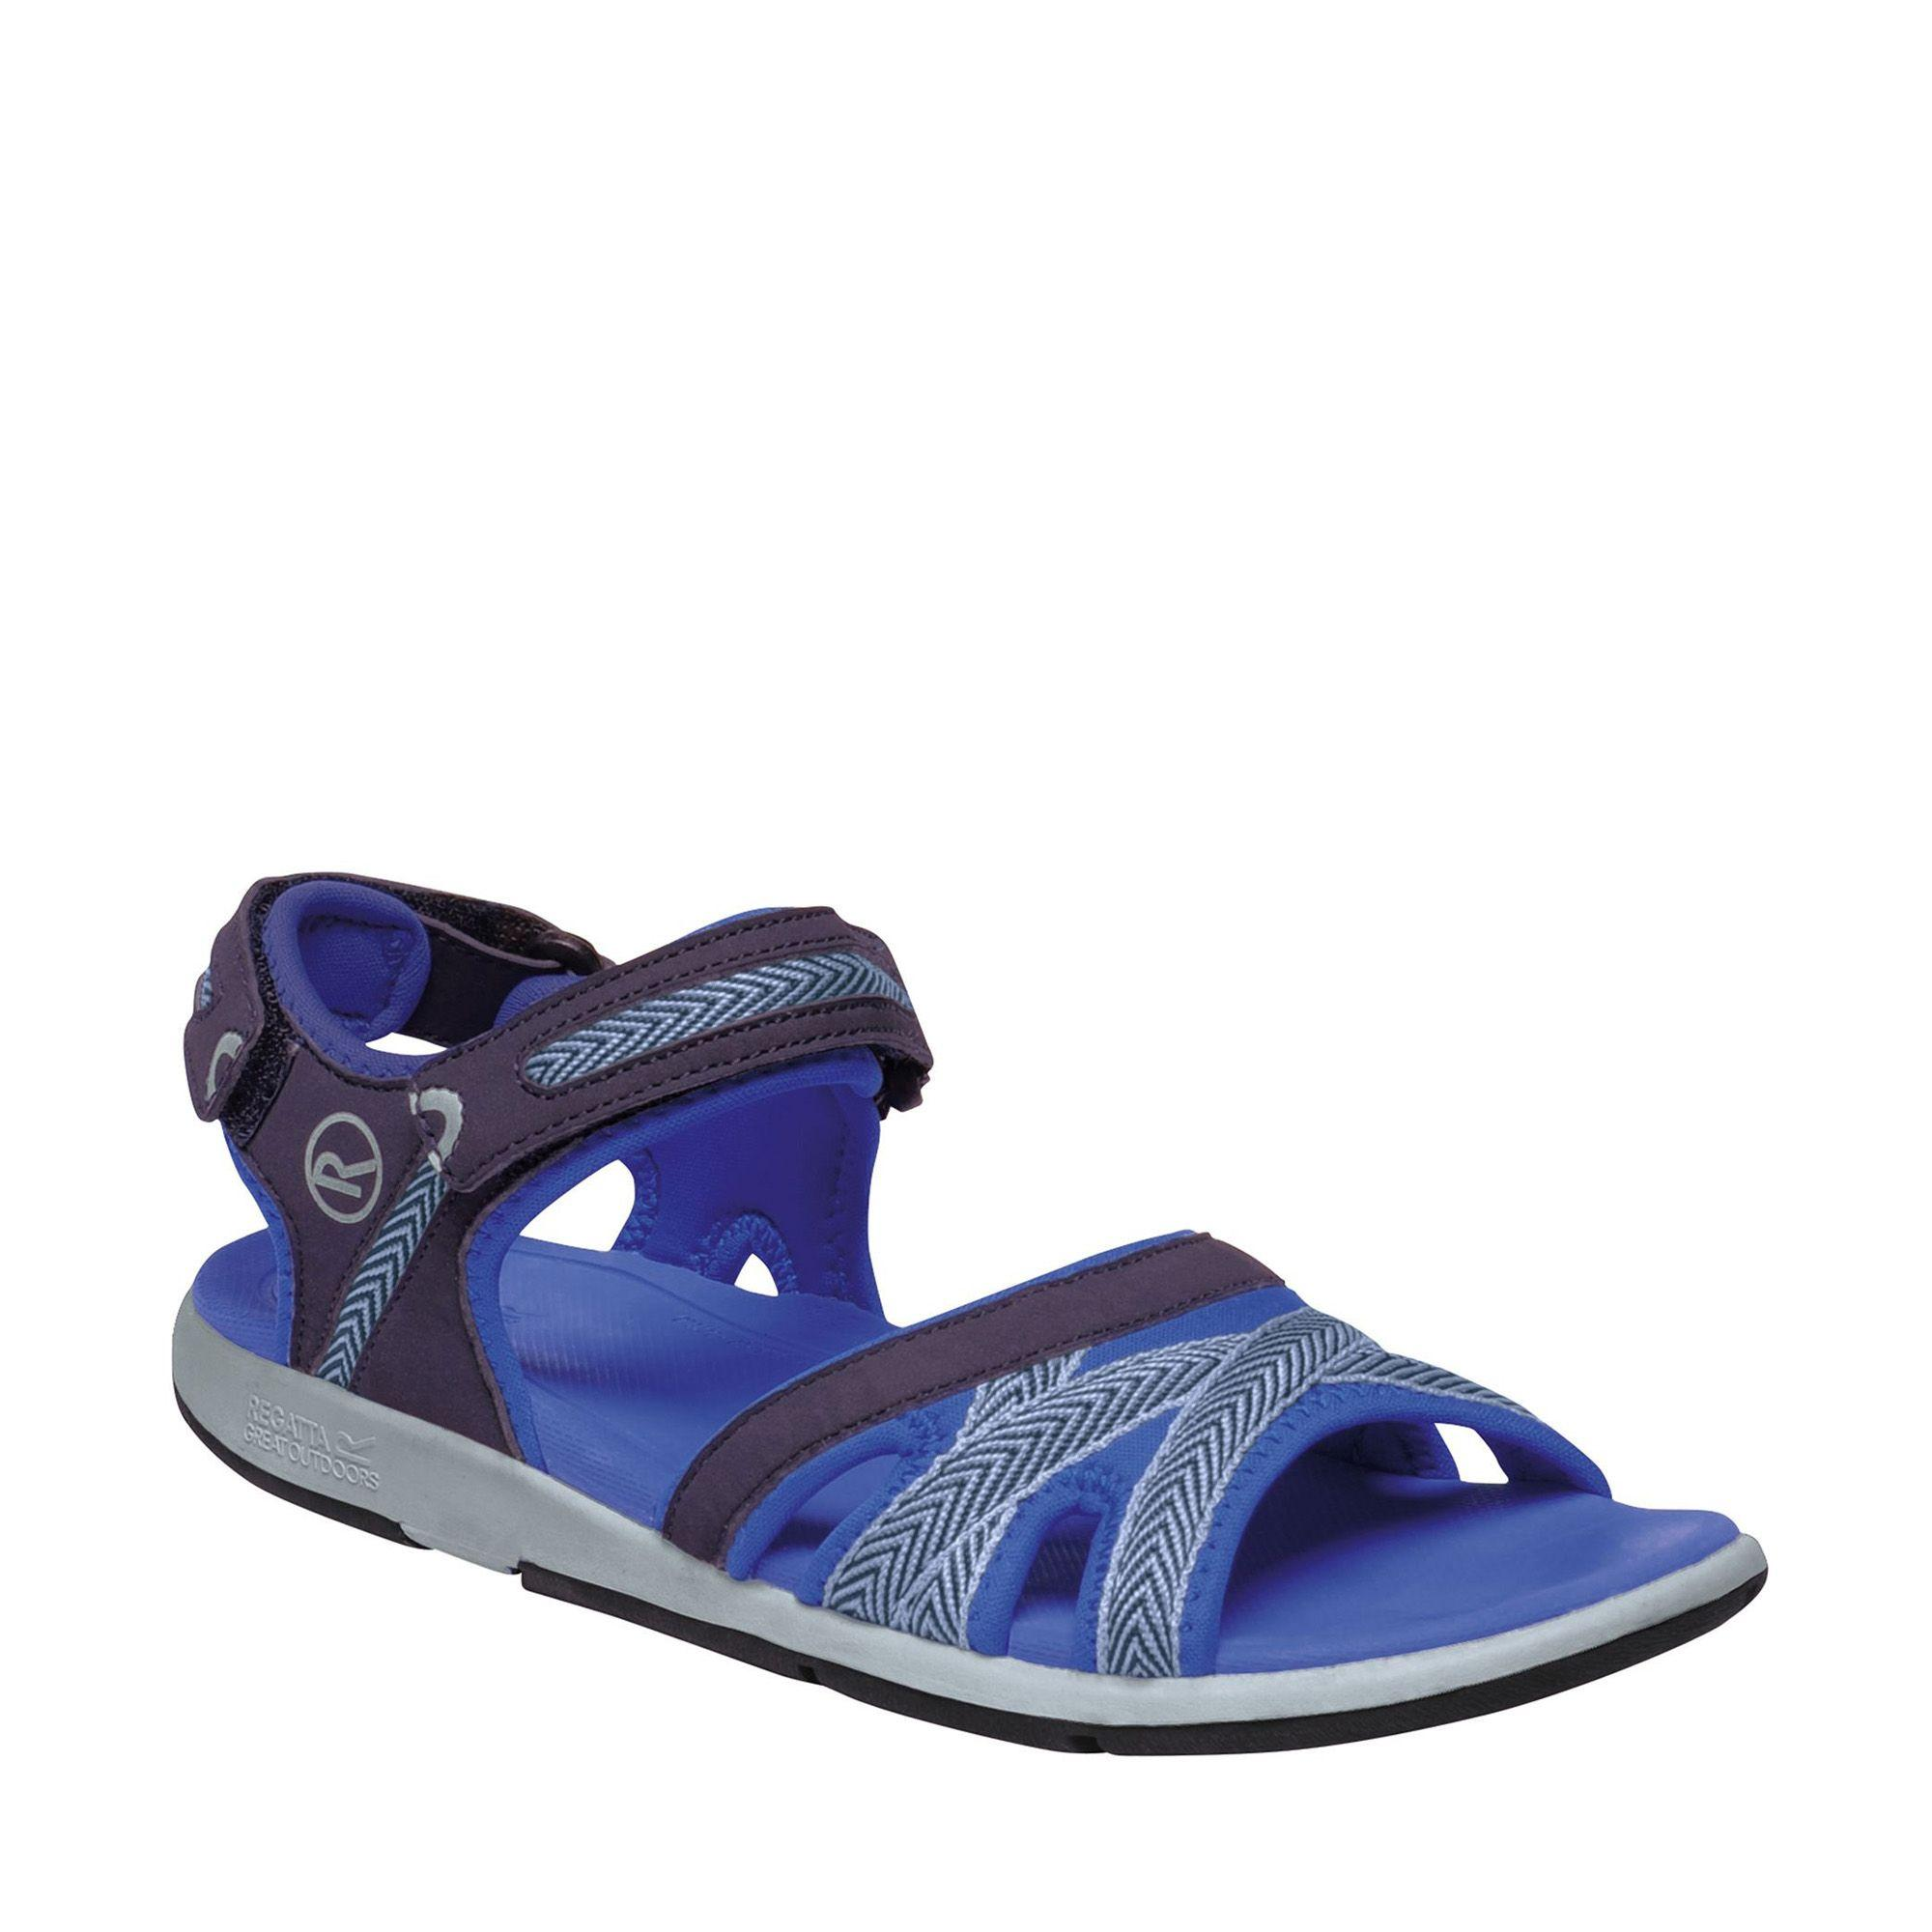 380263ca2b5 Regatta Blue Lady Santa Clara Sandals in Blue - Lyst